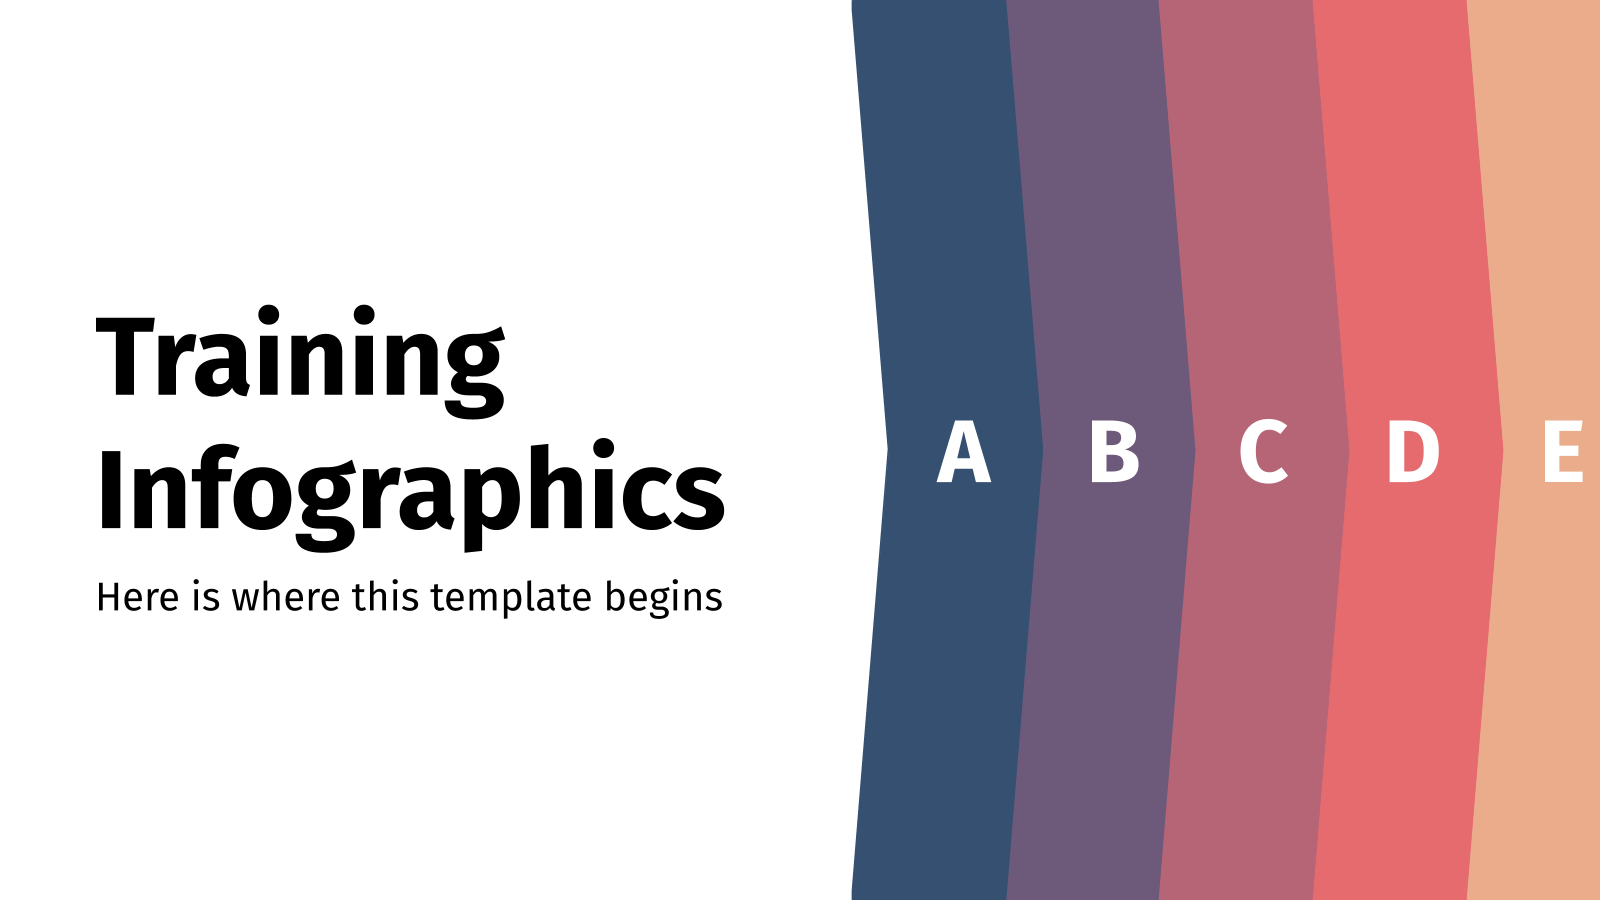 Training Infographics presentation template